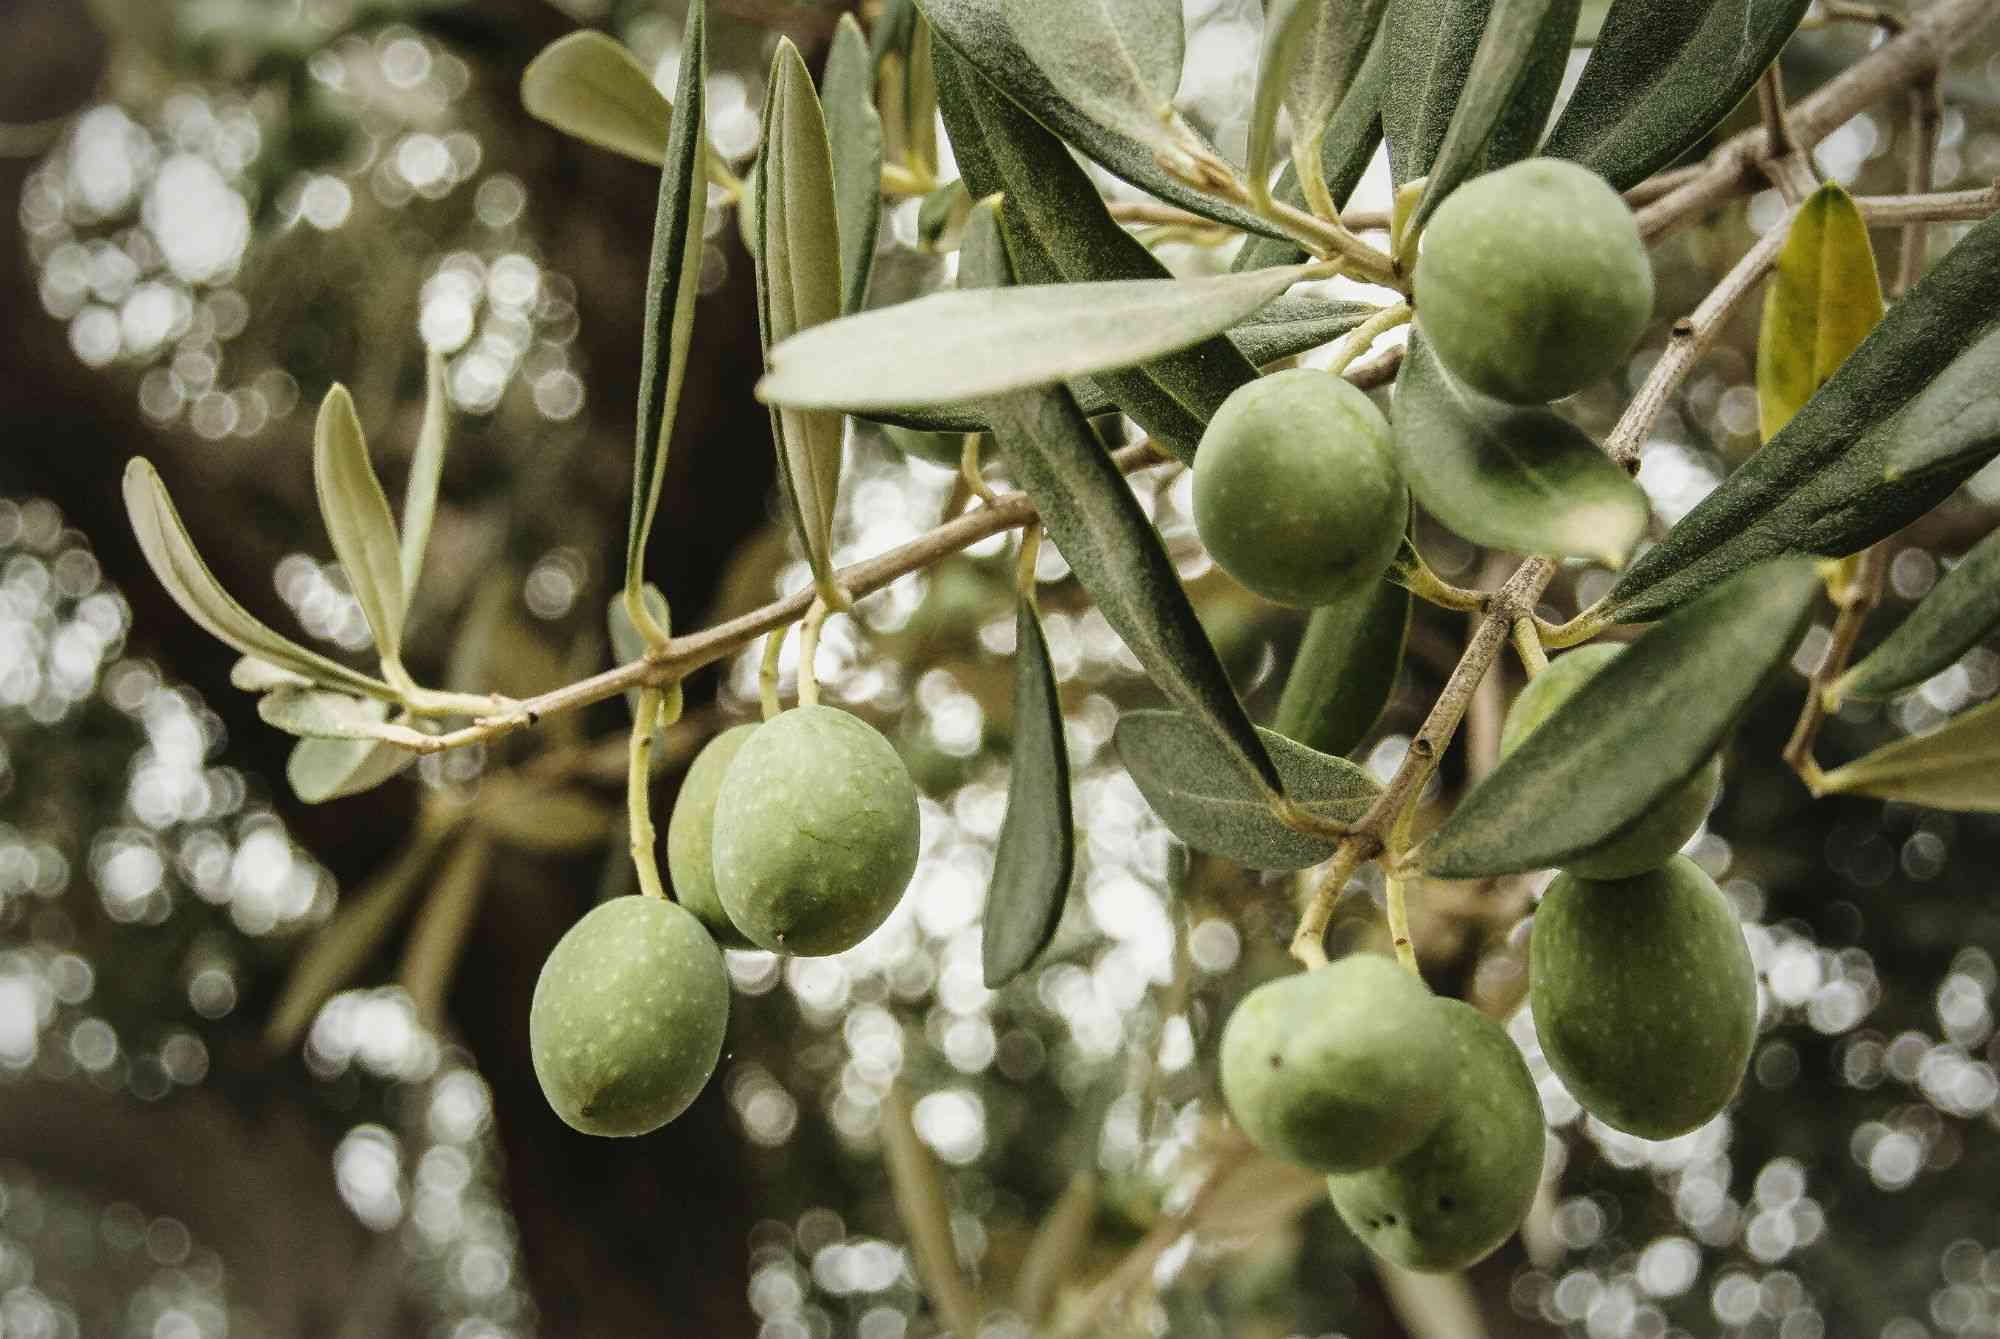 Low Angle View Of Olives Growing On Tree